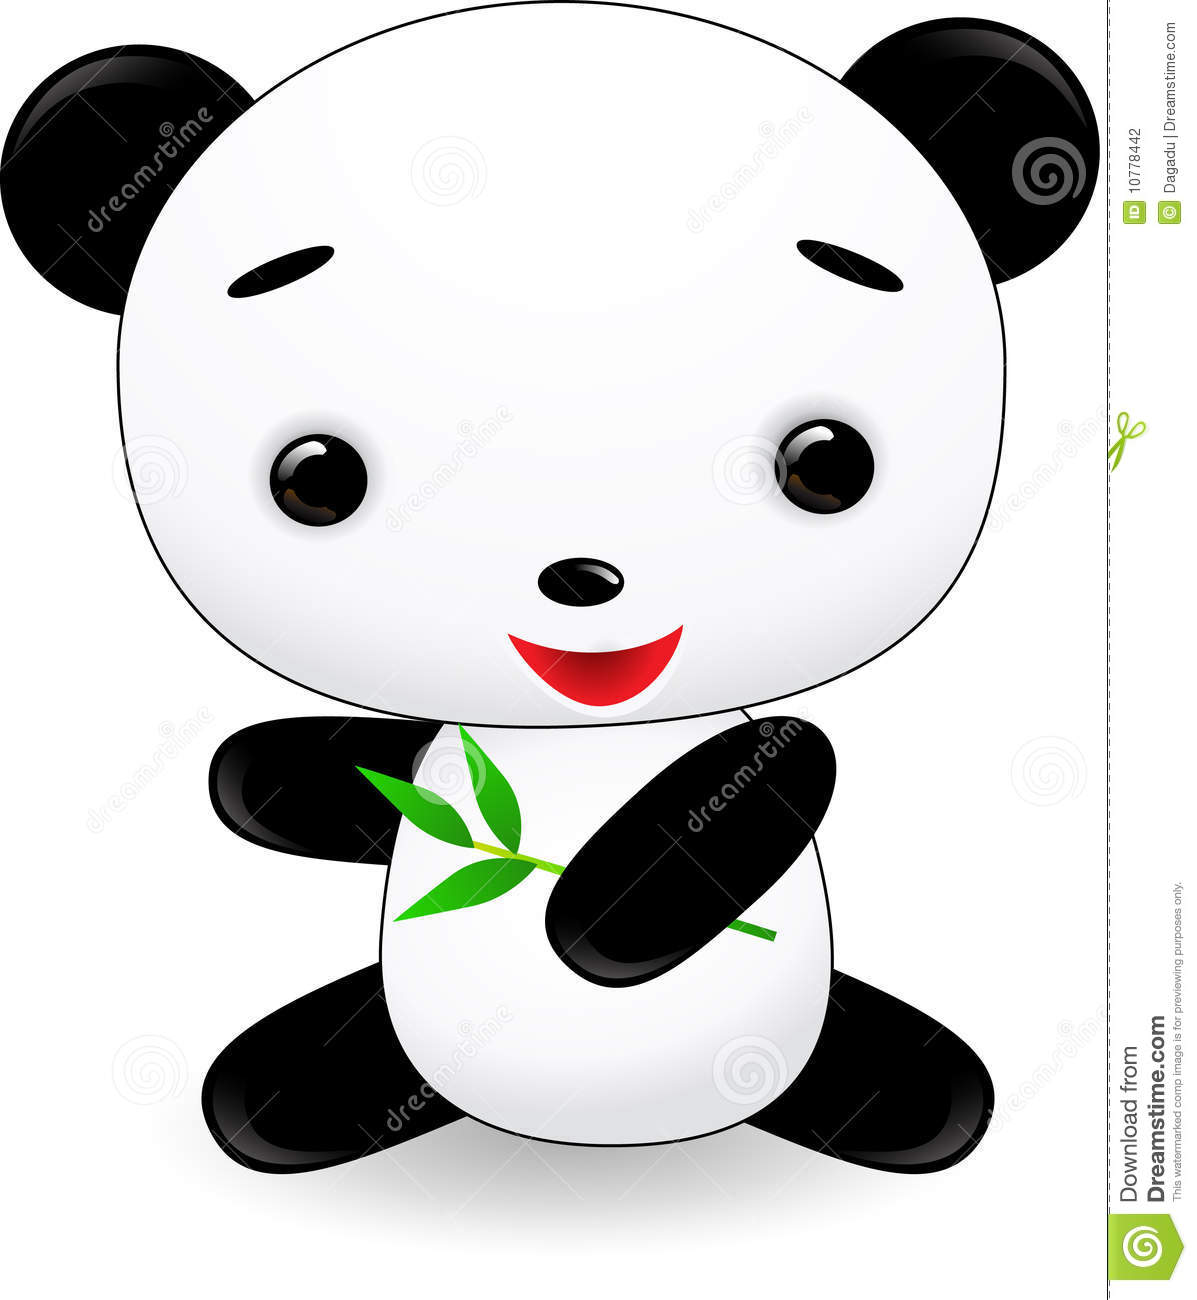 1197x1300 Panda Eating Bamboo Clipart